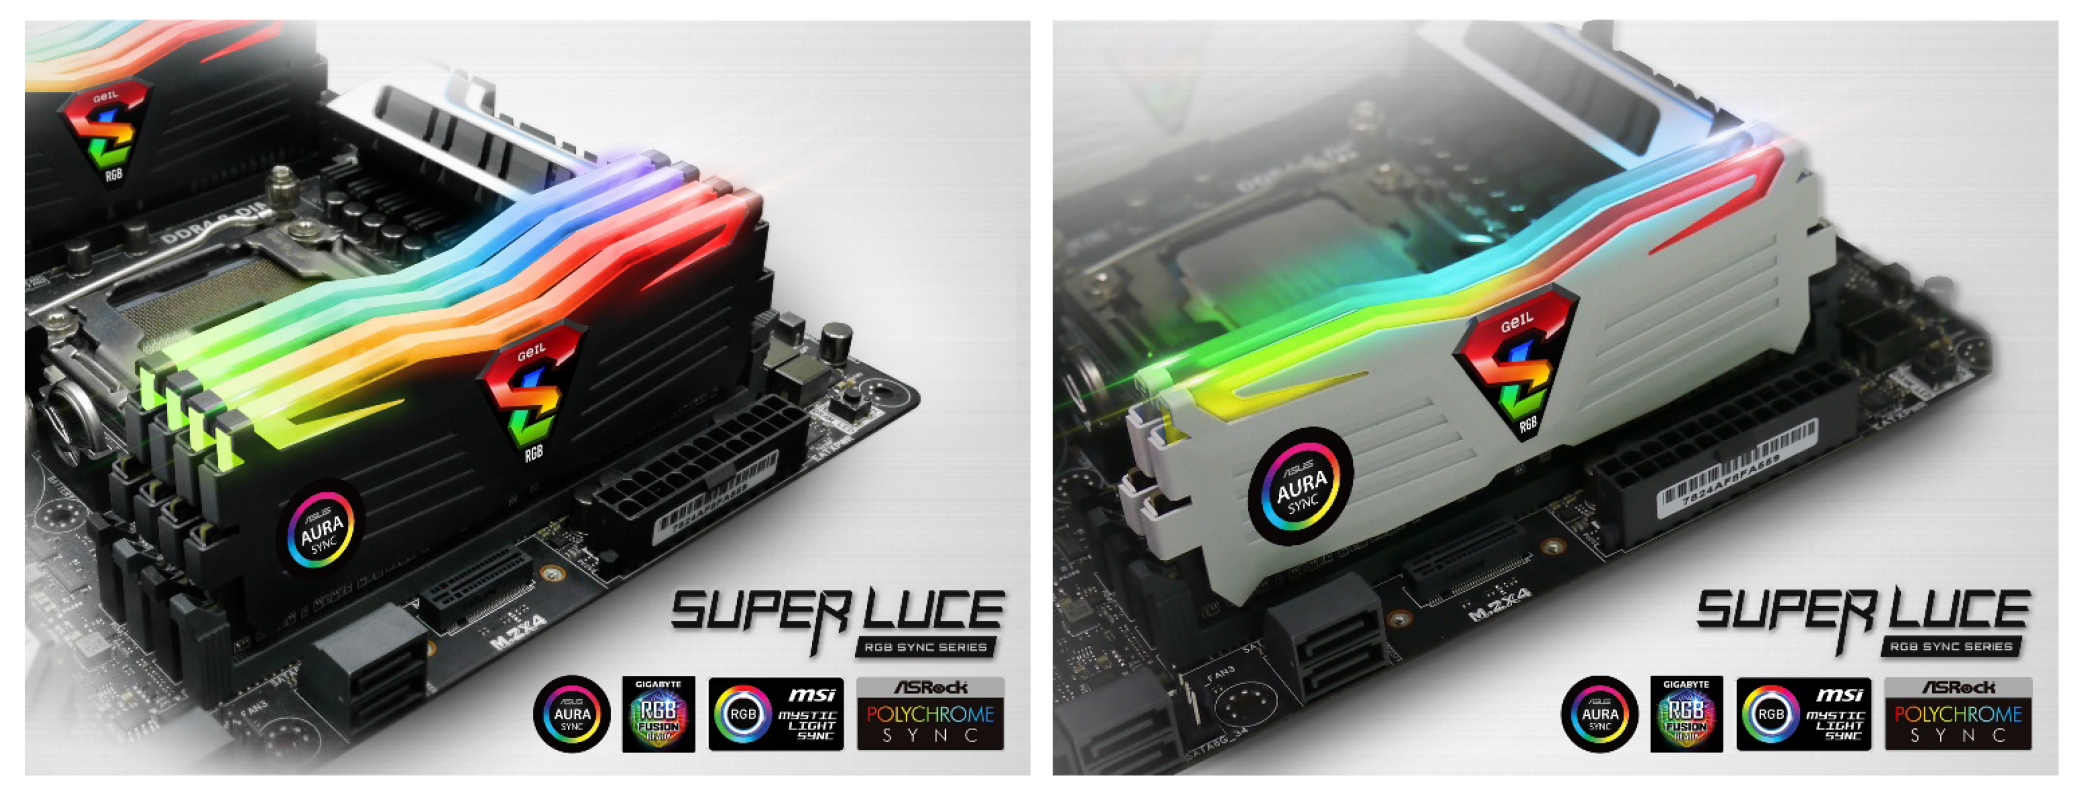 GeIL Launches New Additions to its SUPER LUCE RGB Sync DDR4